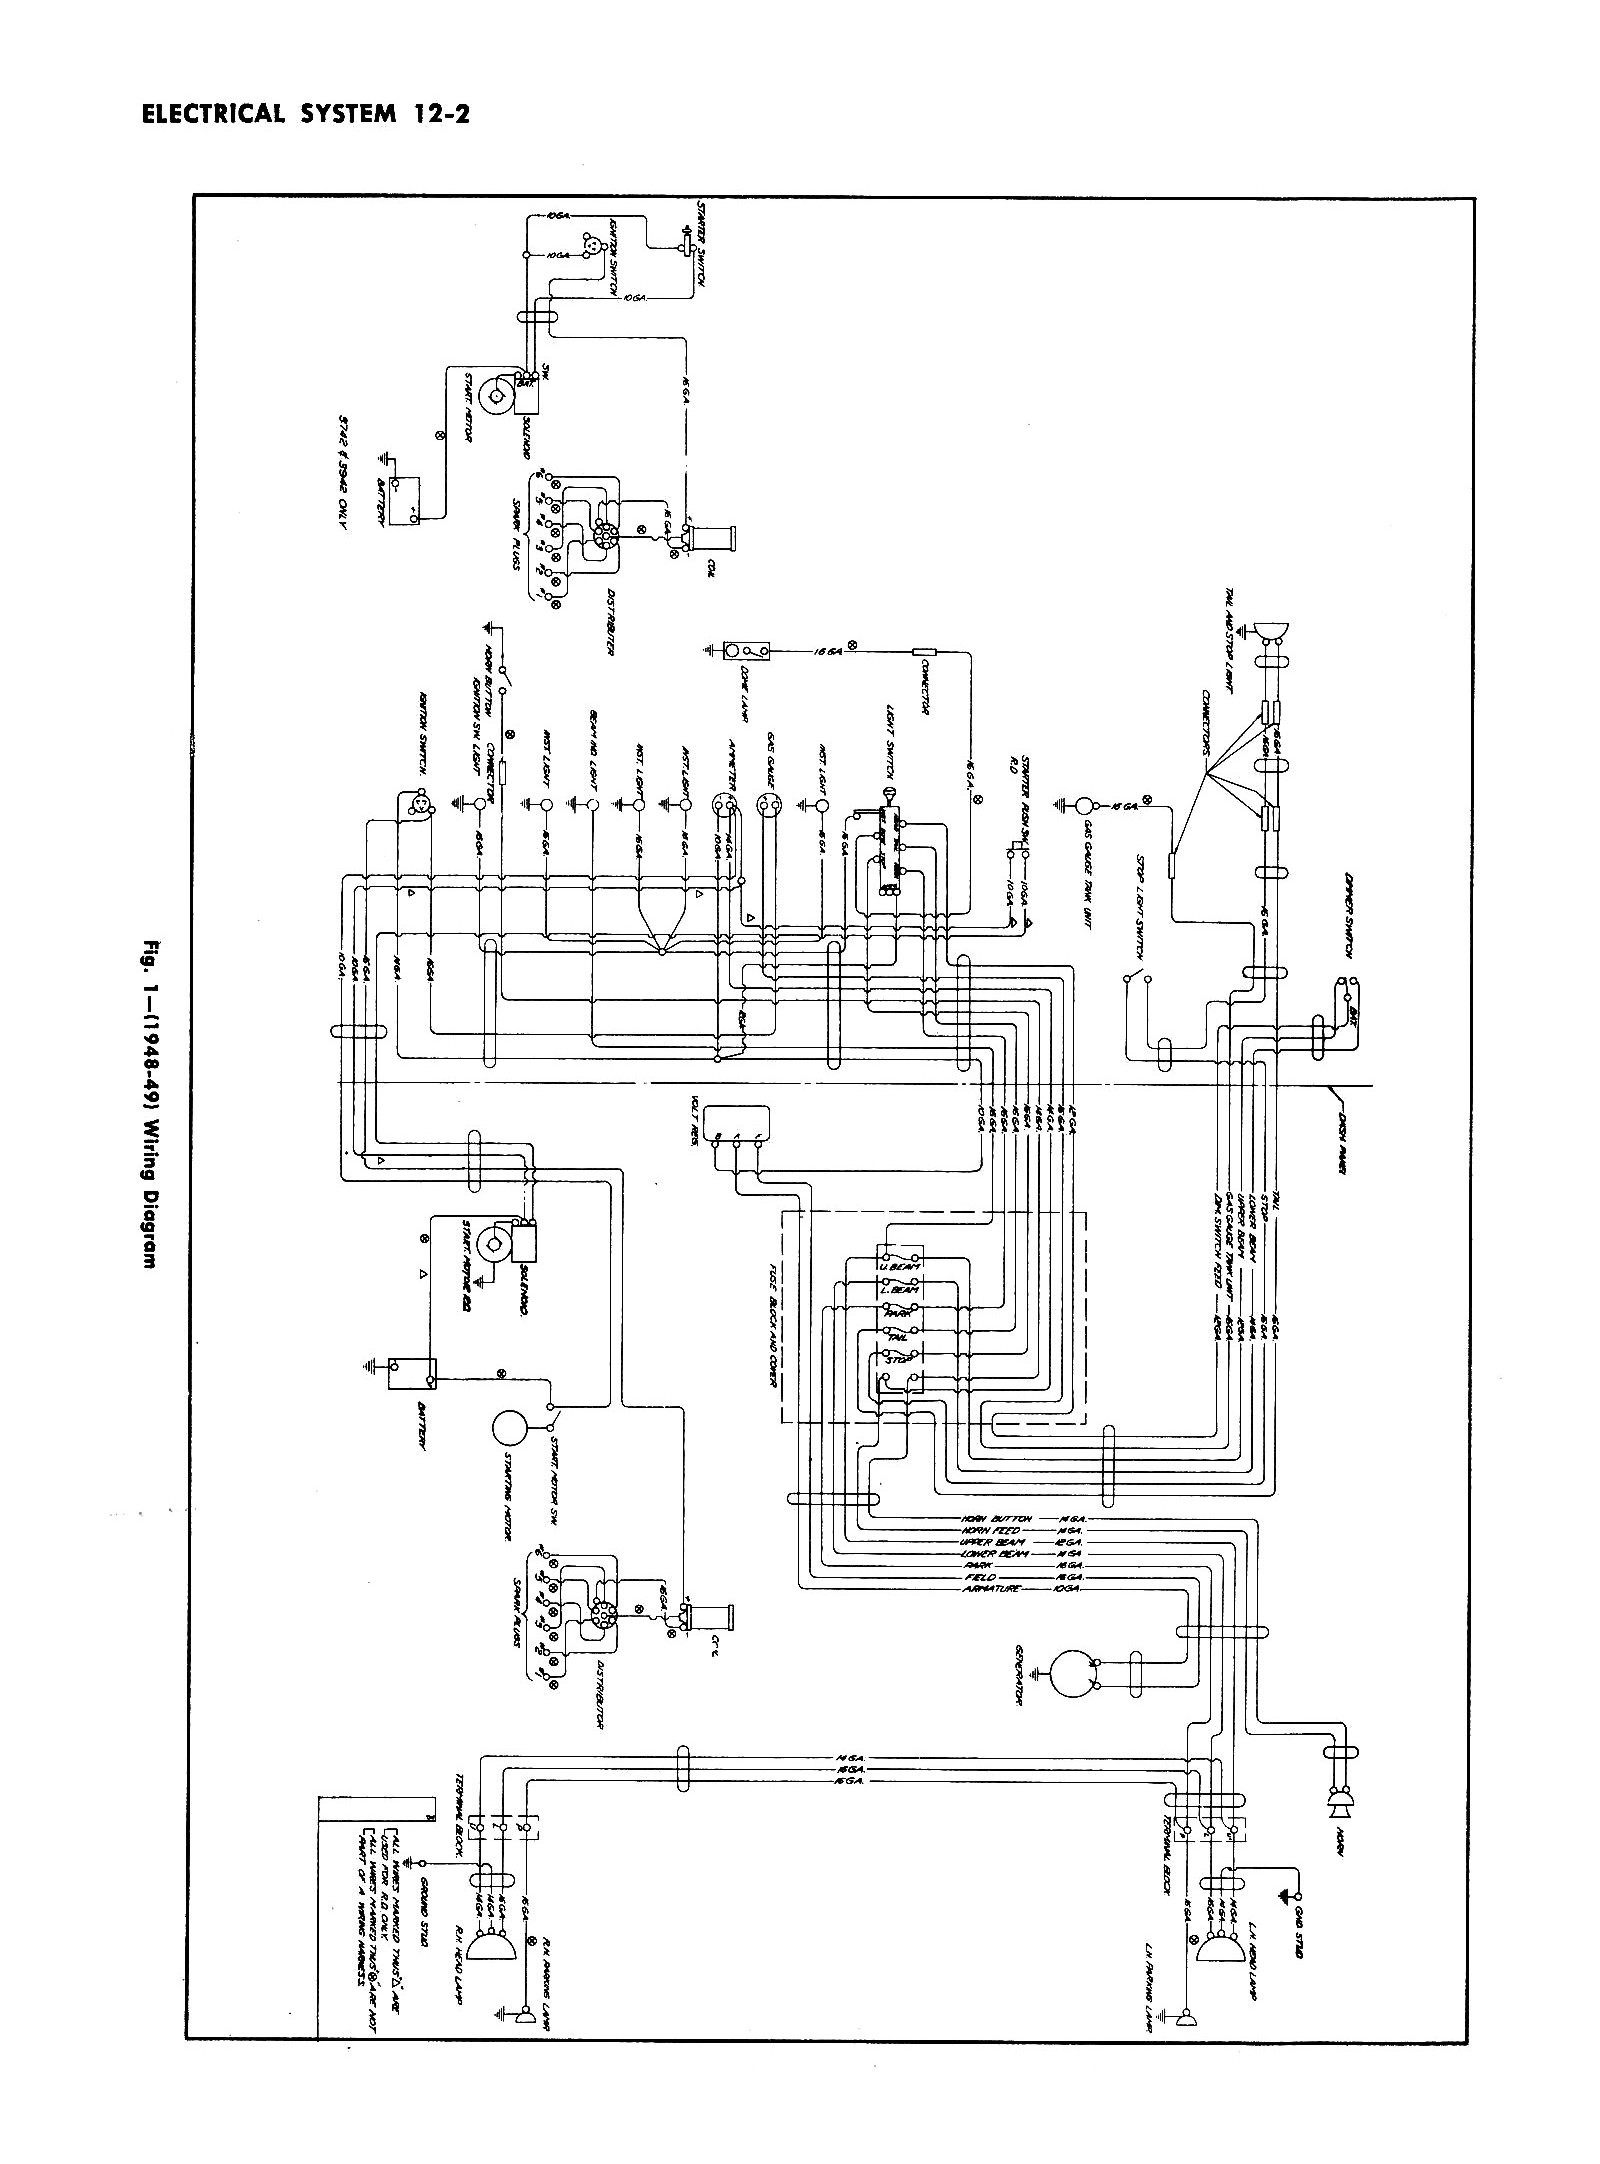 chevy wiring diagrams rh chevy oldcarmanualproject com GM Electrical Diagrams GM Car Wiring Diagram